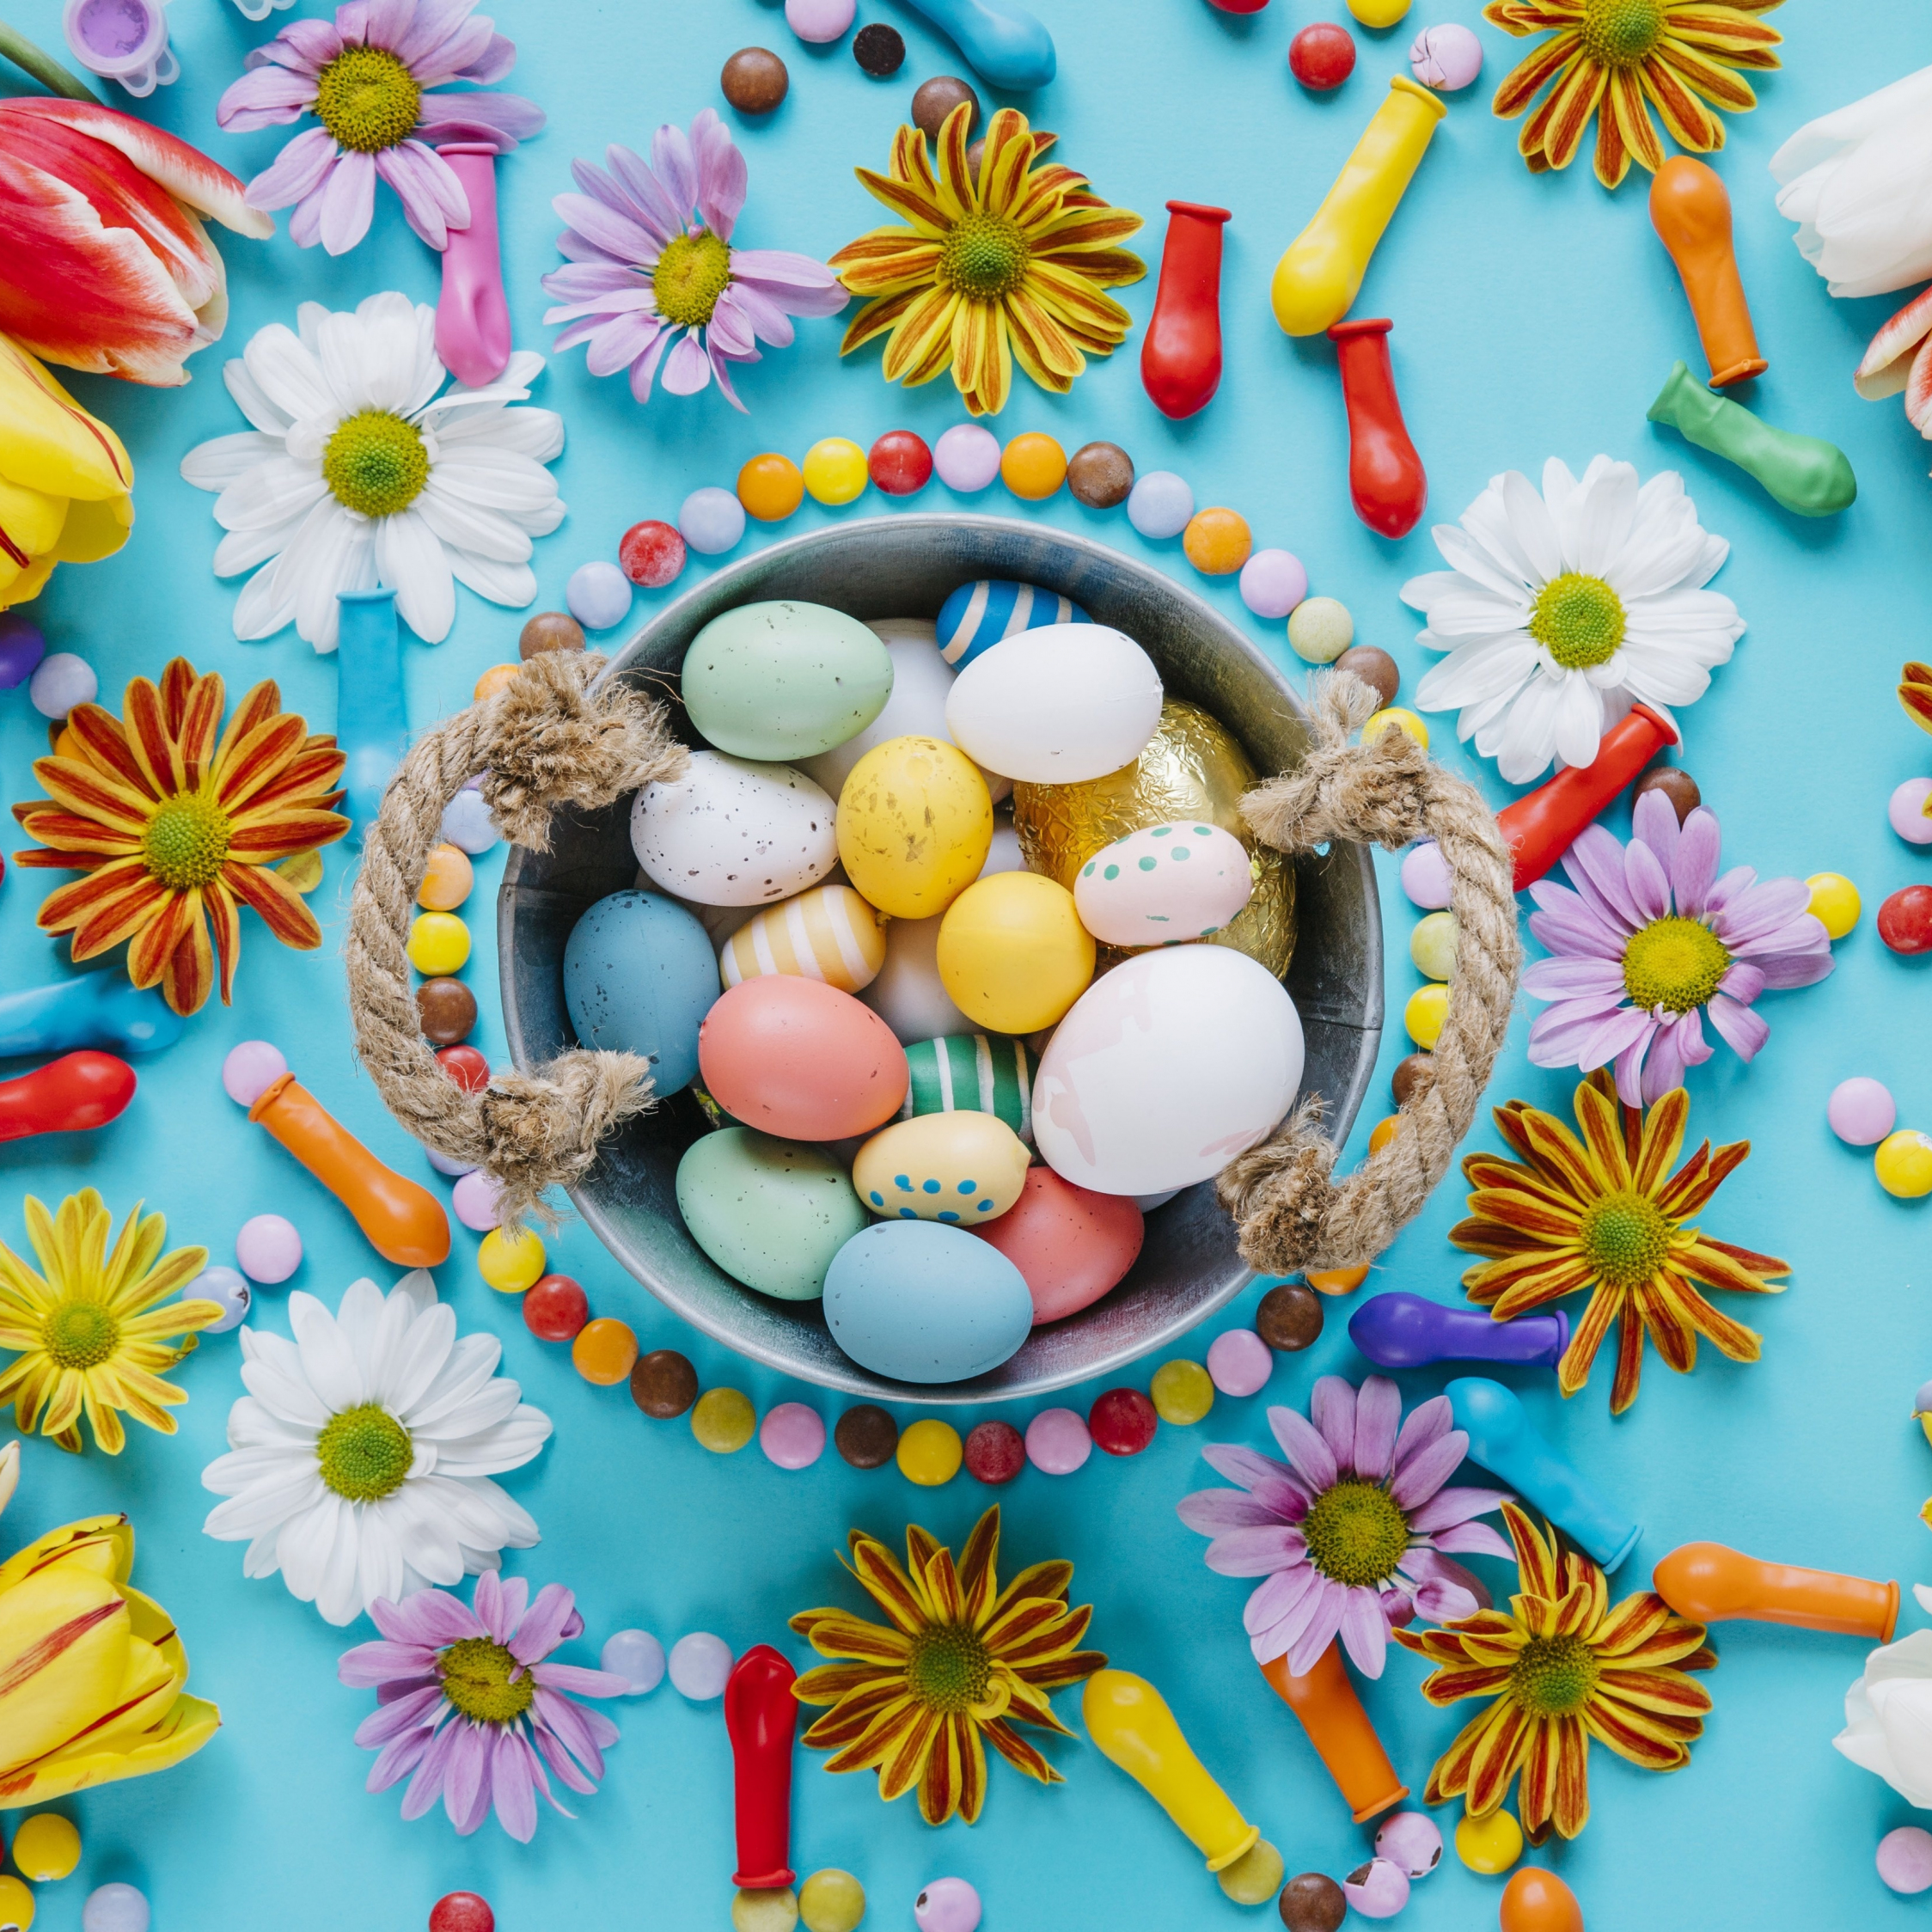 Download 2248x2248 Wallpaper Easter Colored Eggs Basket